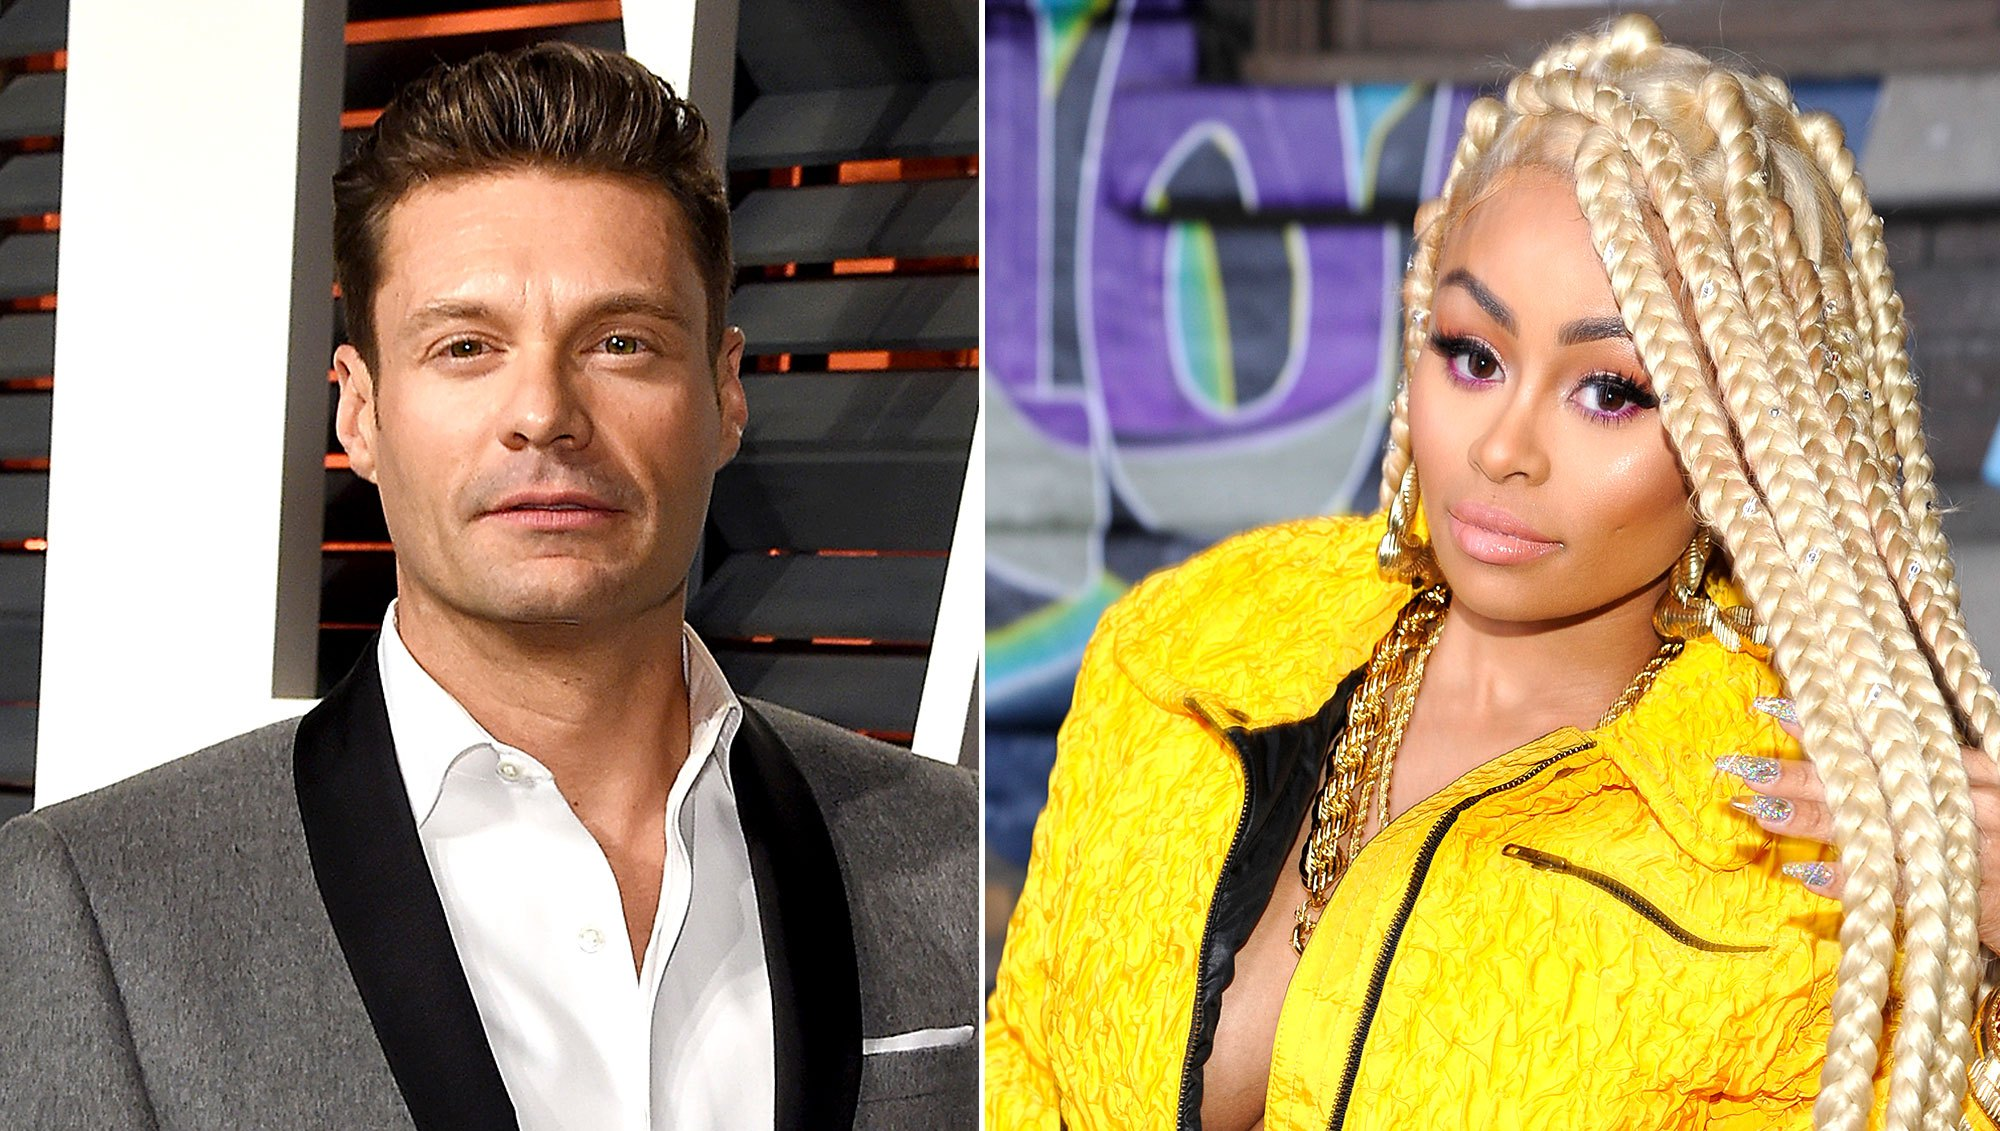 Ryan Seacrest Still Refuses to Be Deposed in Blac Chyna vs. Kardashian Case